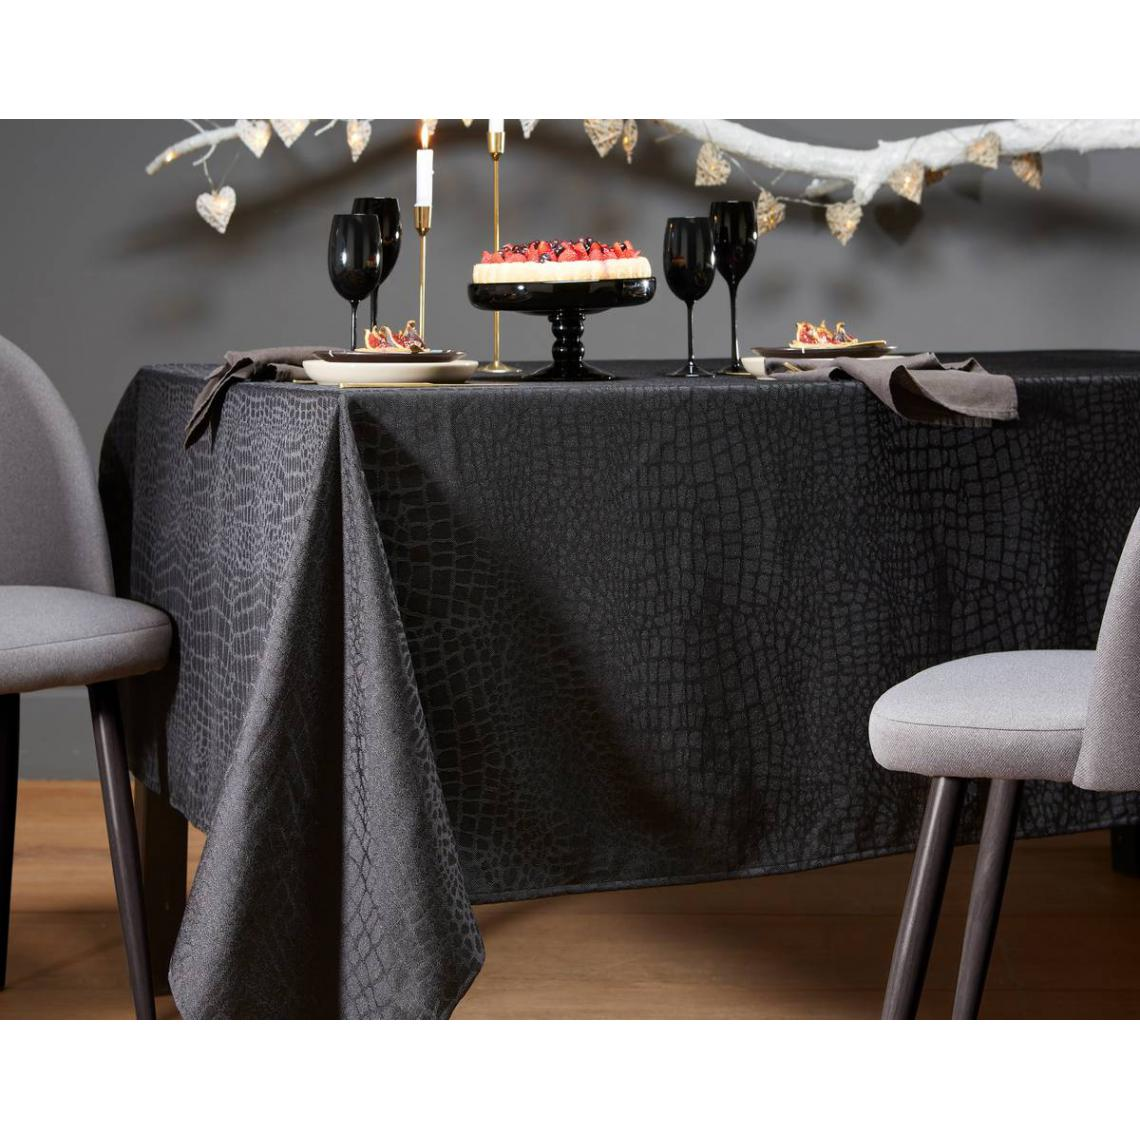 Nappe Ovale Damassee Style Croco 180 X 240 Cm 3 Suisses